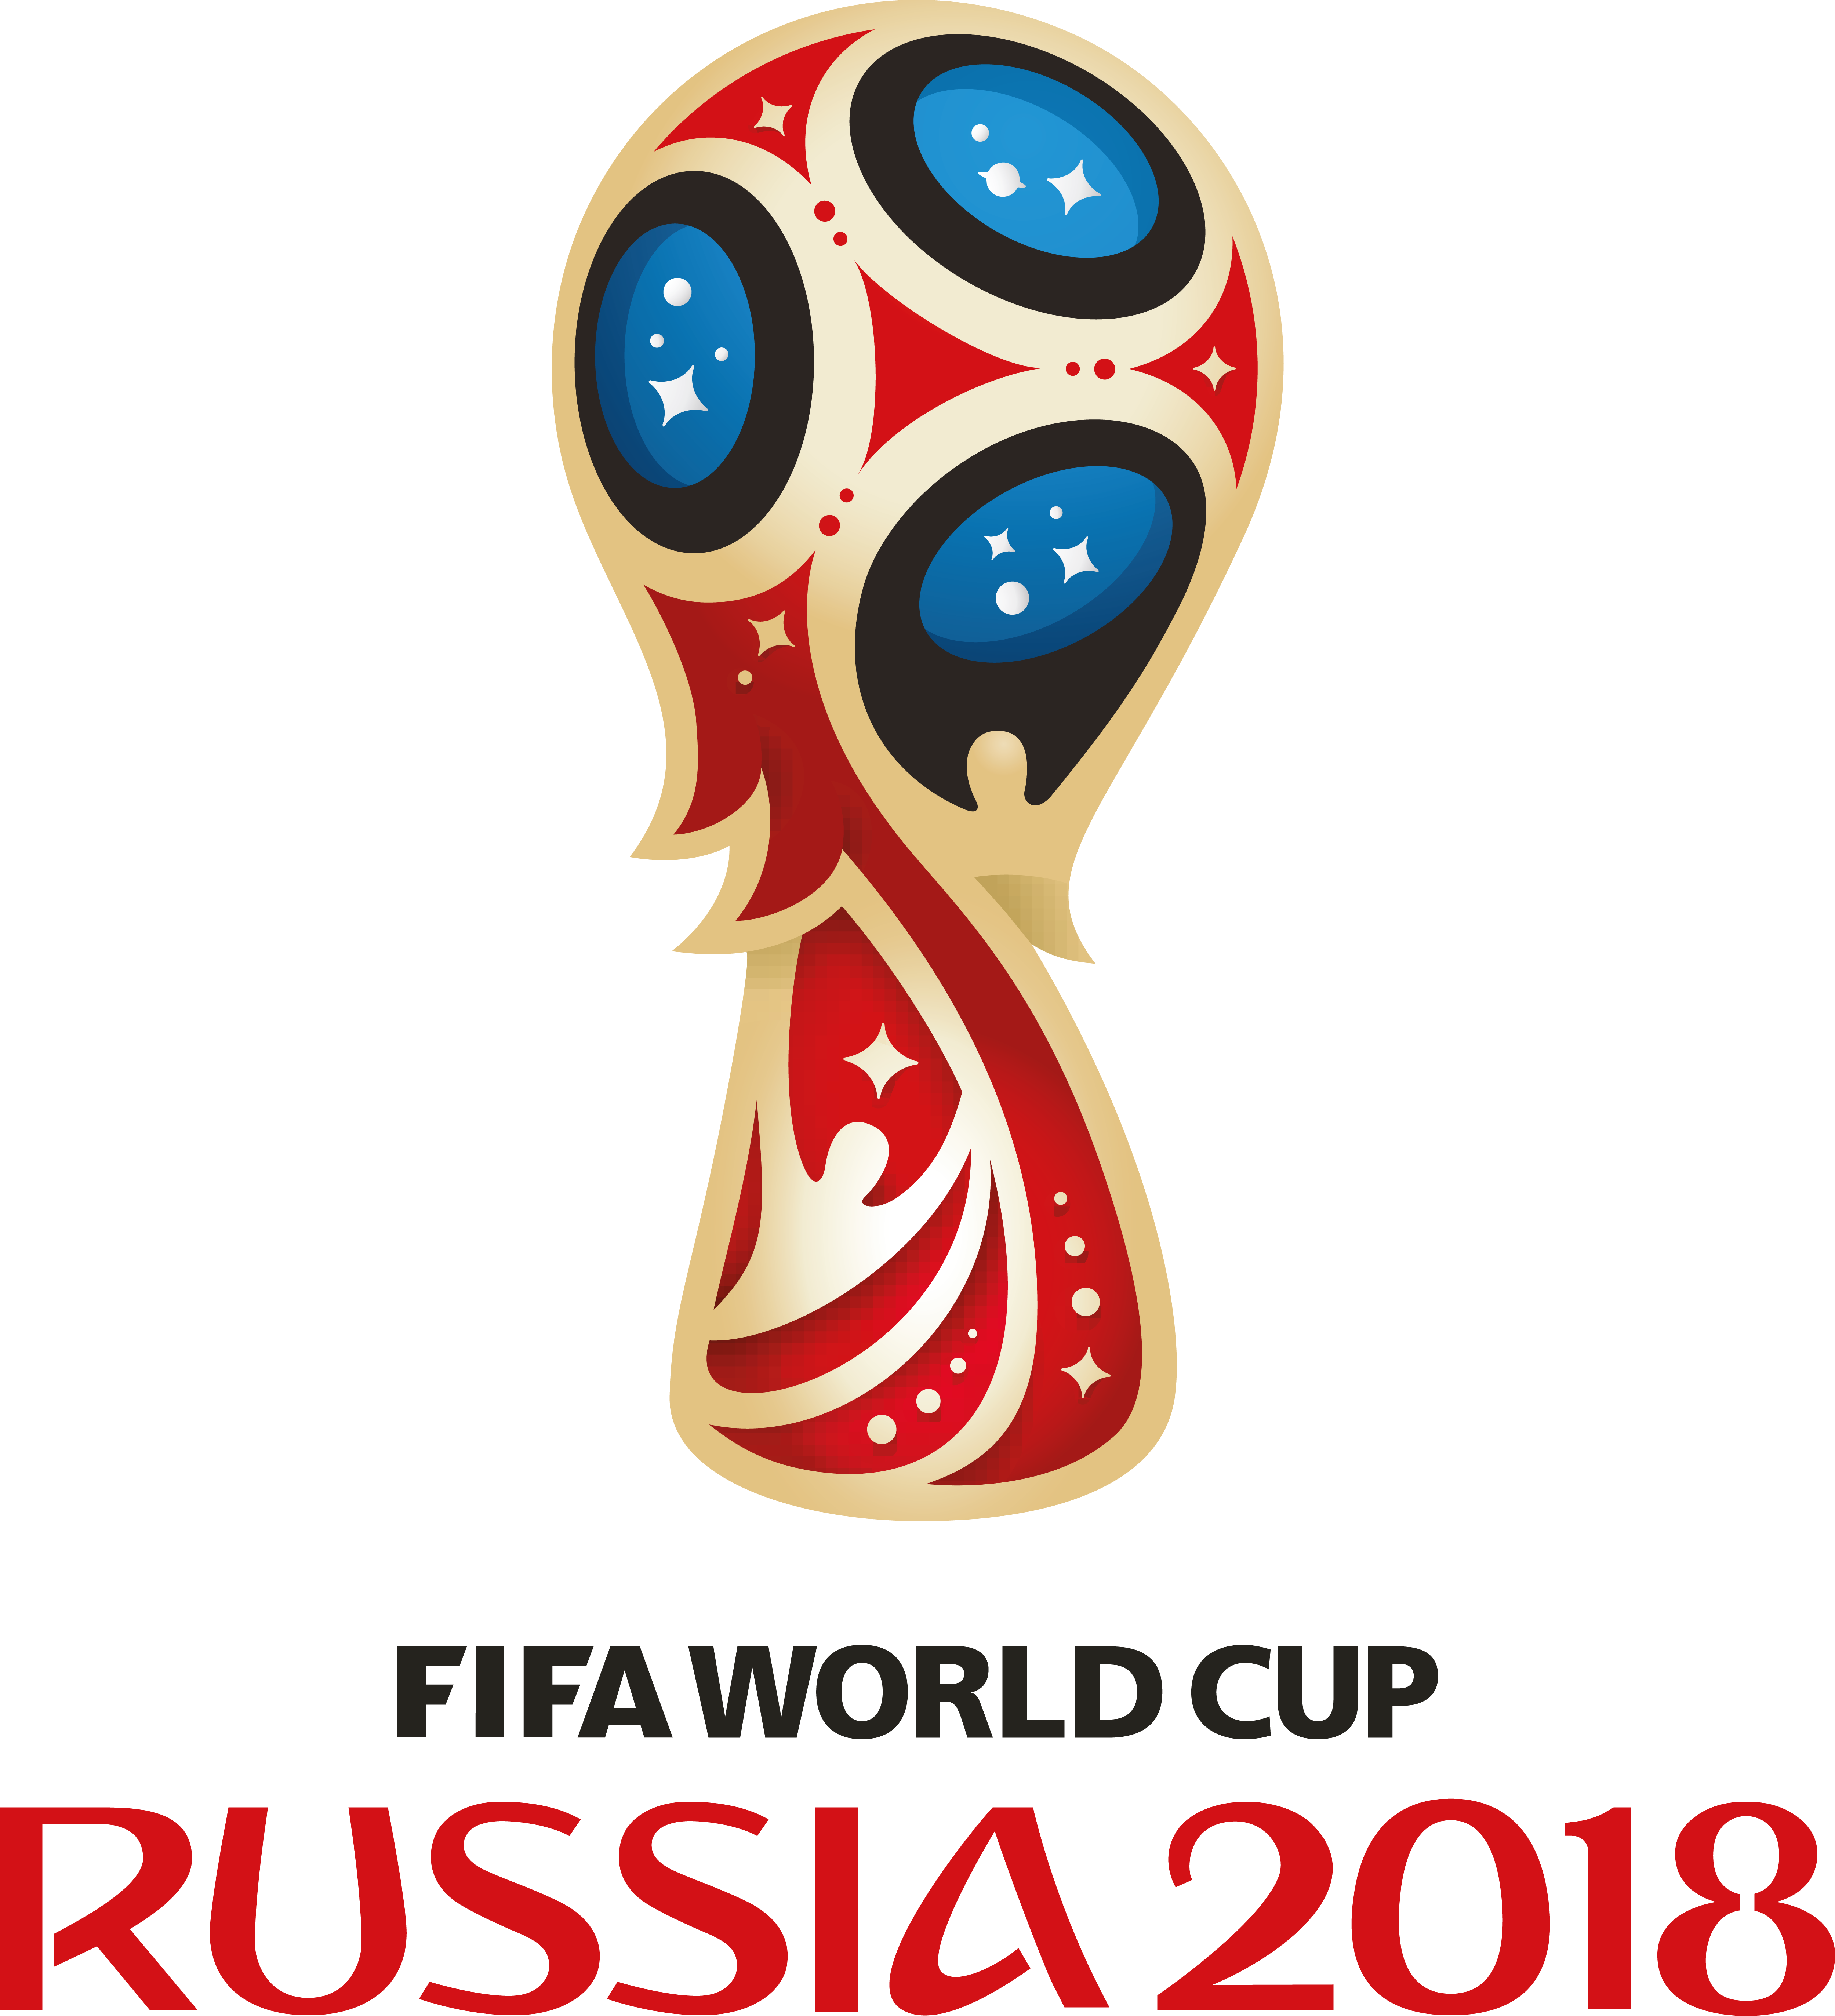 This High Quality Free Png Image Without Any Background Is About Logos Logo Fifa Logo Pocal Football Fifa And Ru World Cup Logo Russia World Cup World Cup